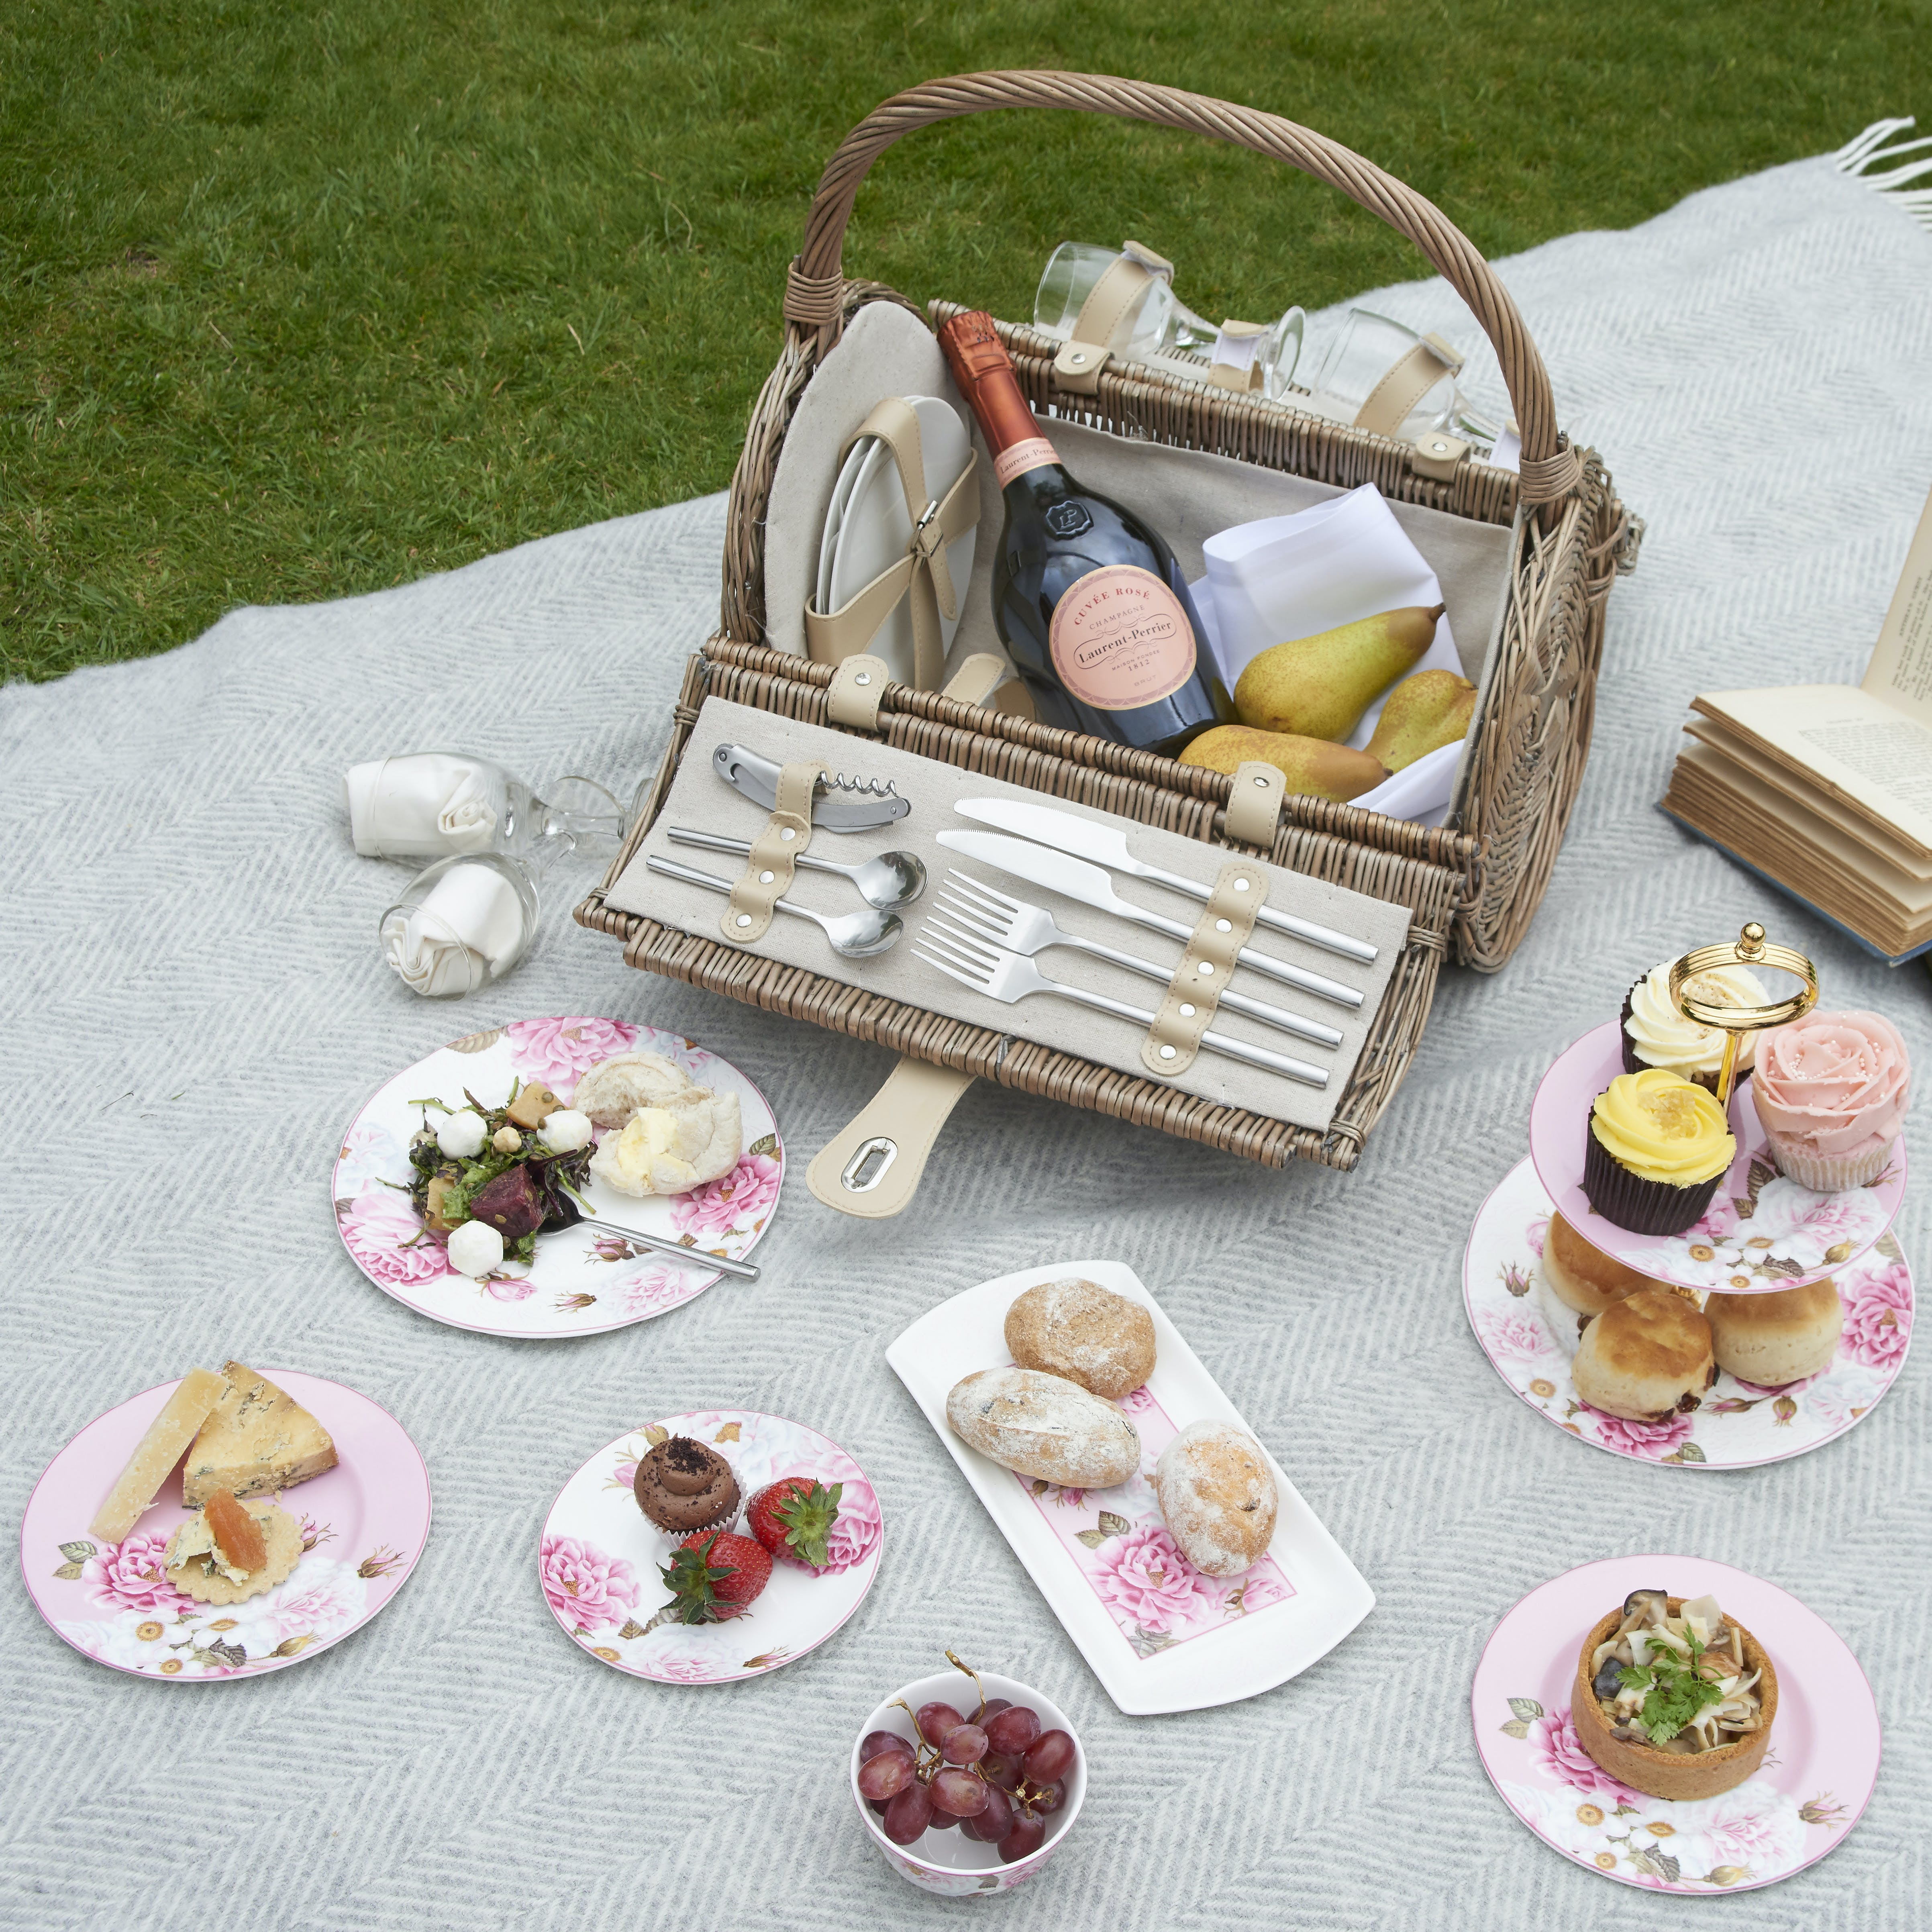 Lifestyle imagery of picnic ware